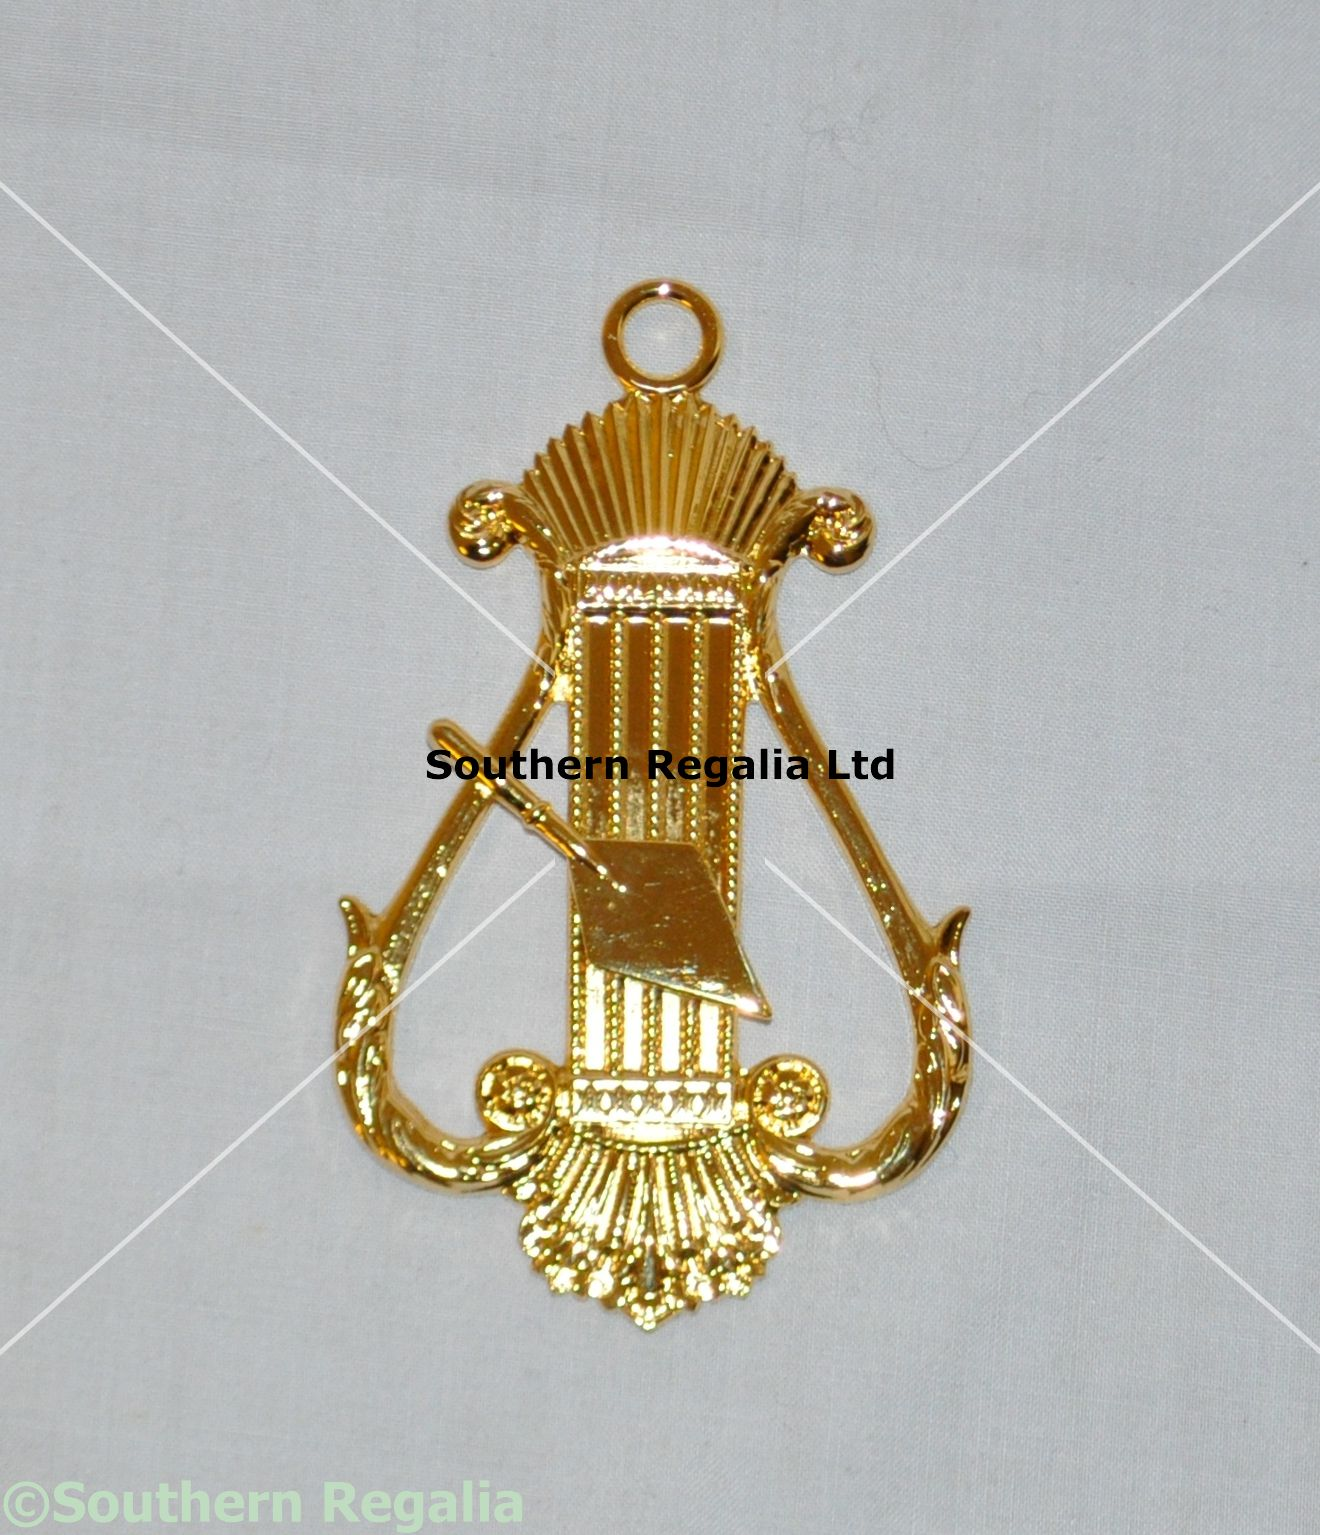 RSM Council Collar Jewel - Organist